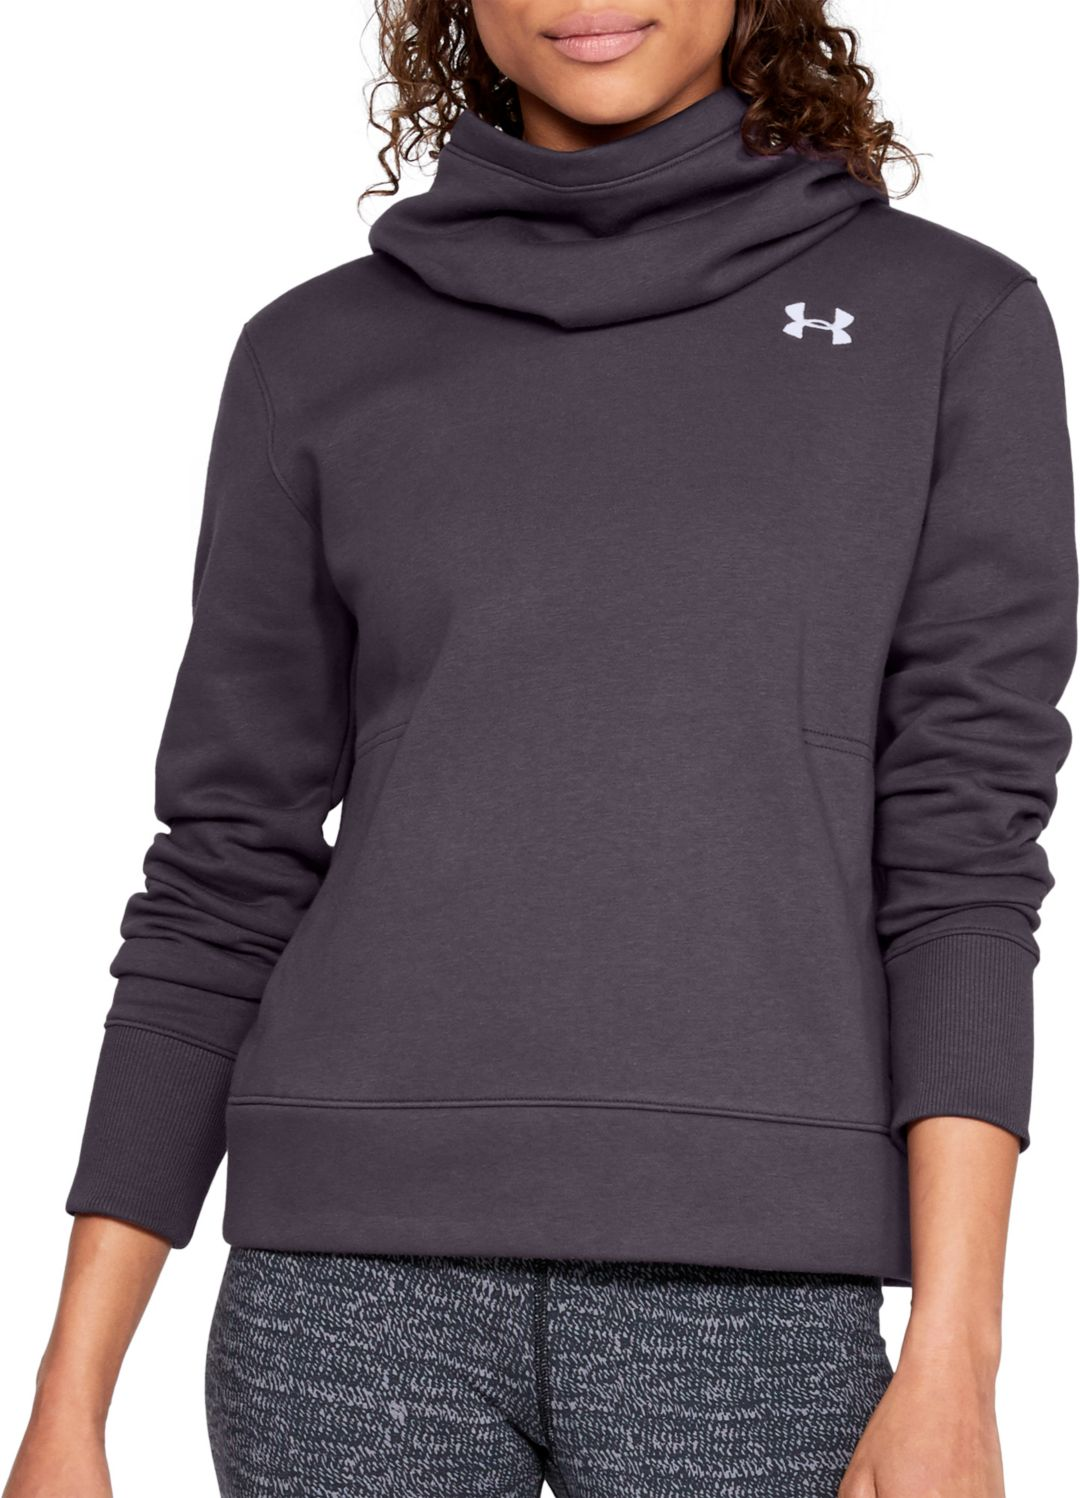 4b24c49e Under Armour Women's Cotton Rival Fleece Logo Hoodie